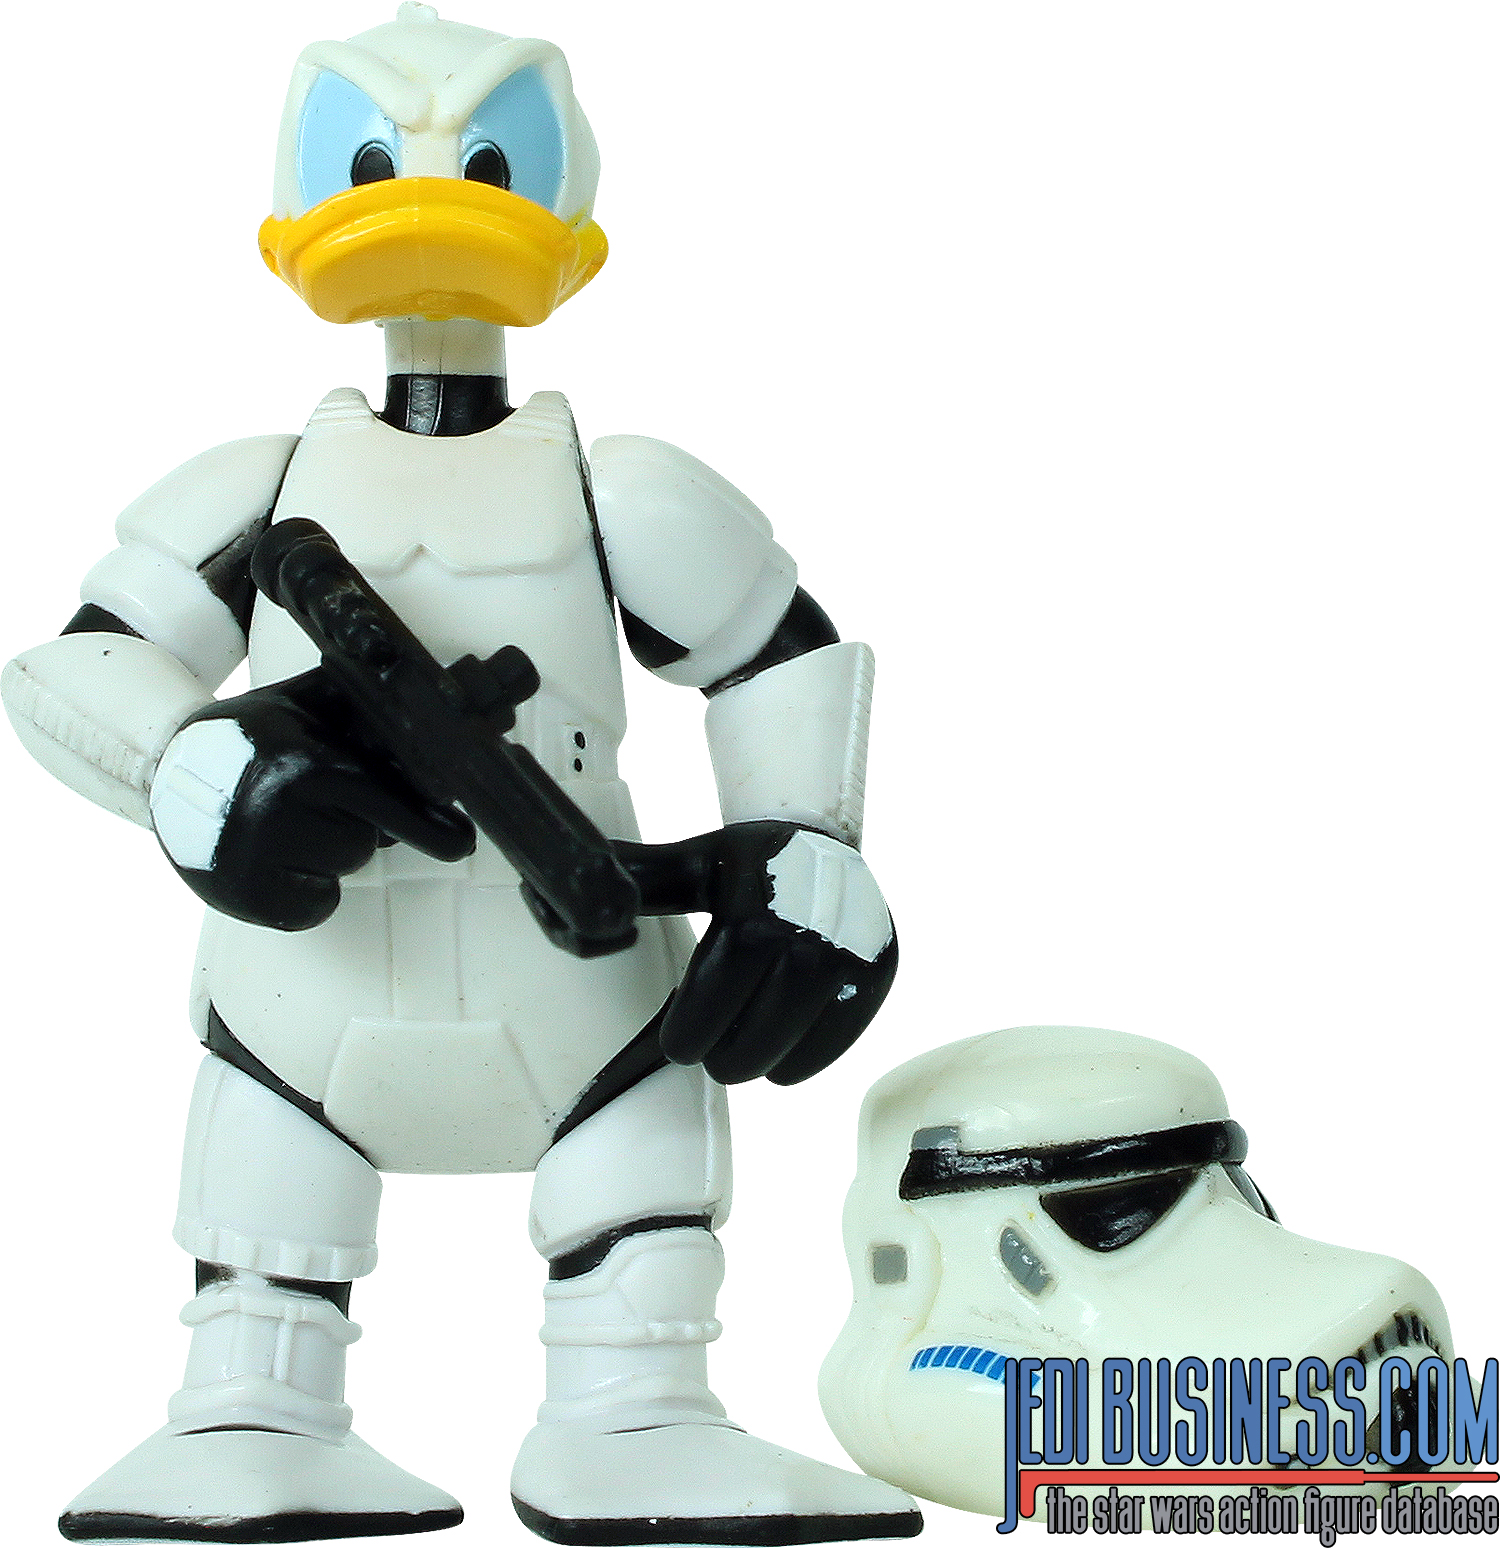 Donald Duck, Series 3 - Donald Duck As Stormtrooper